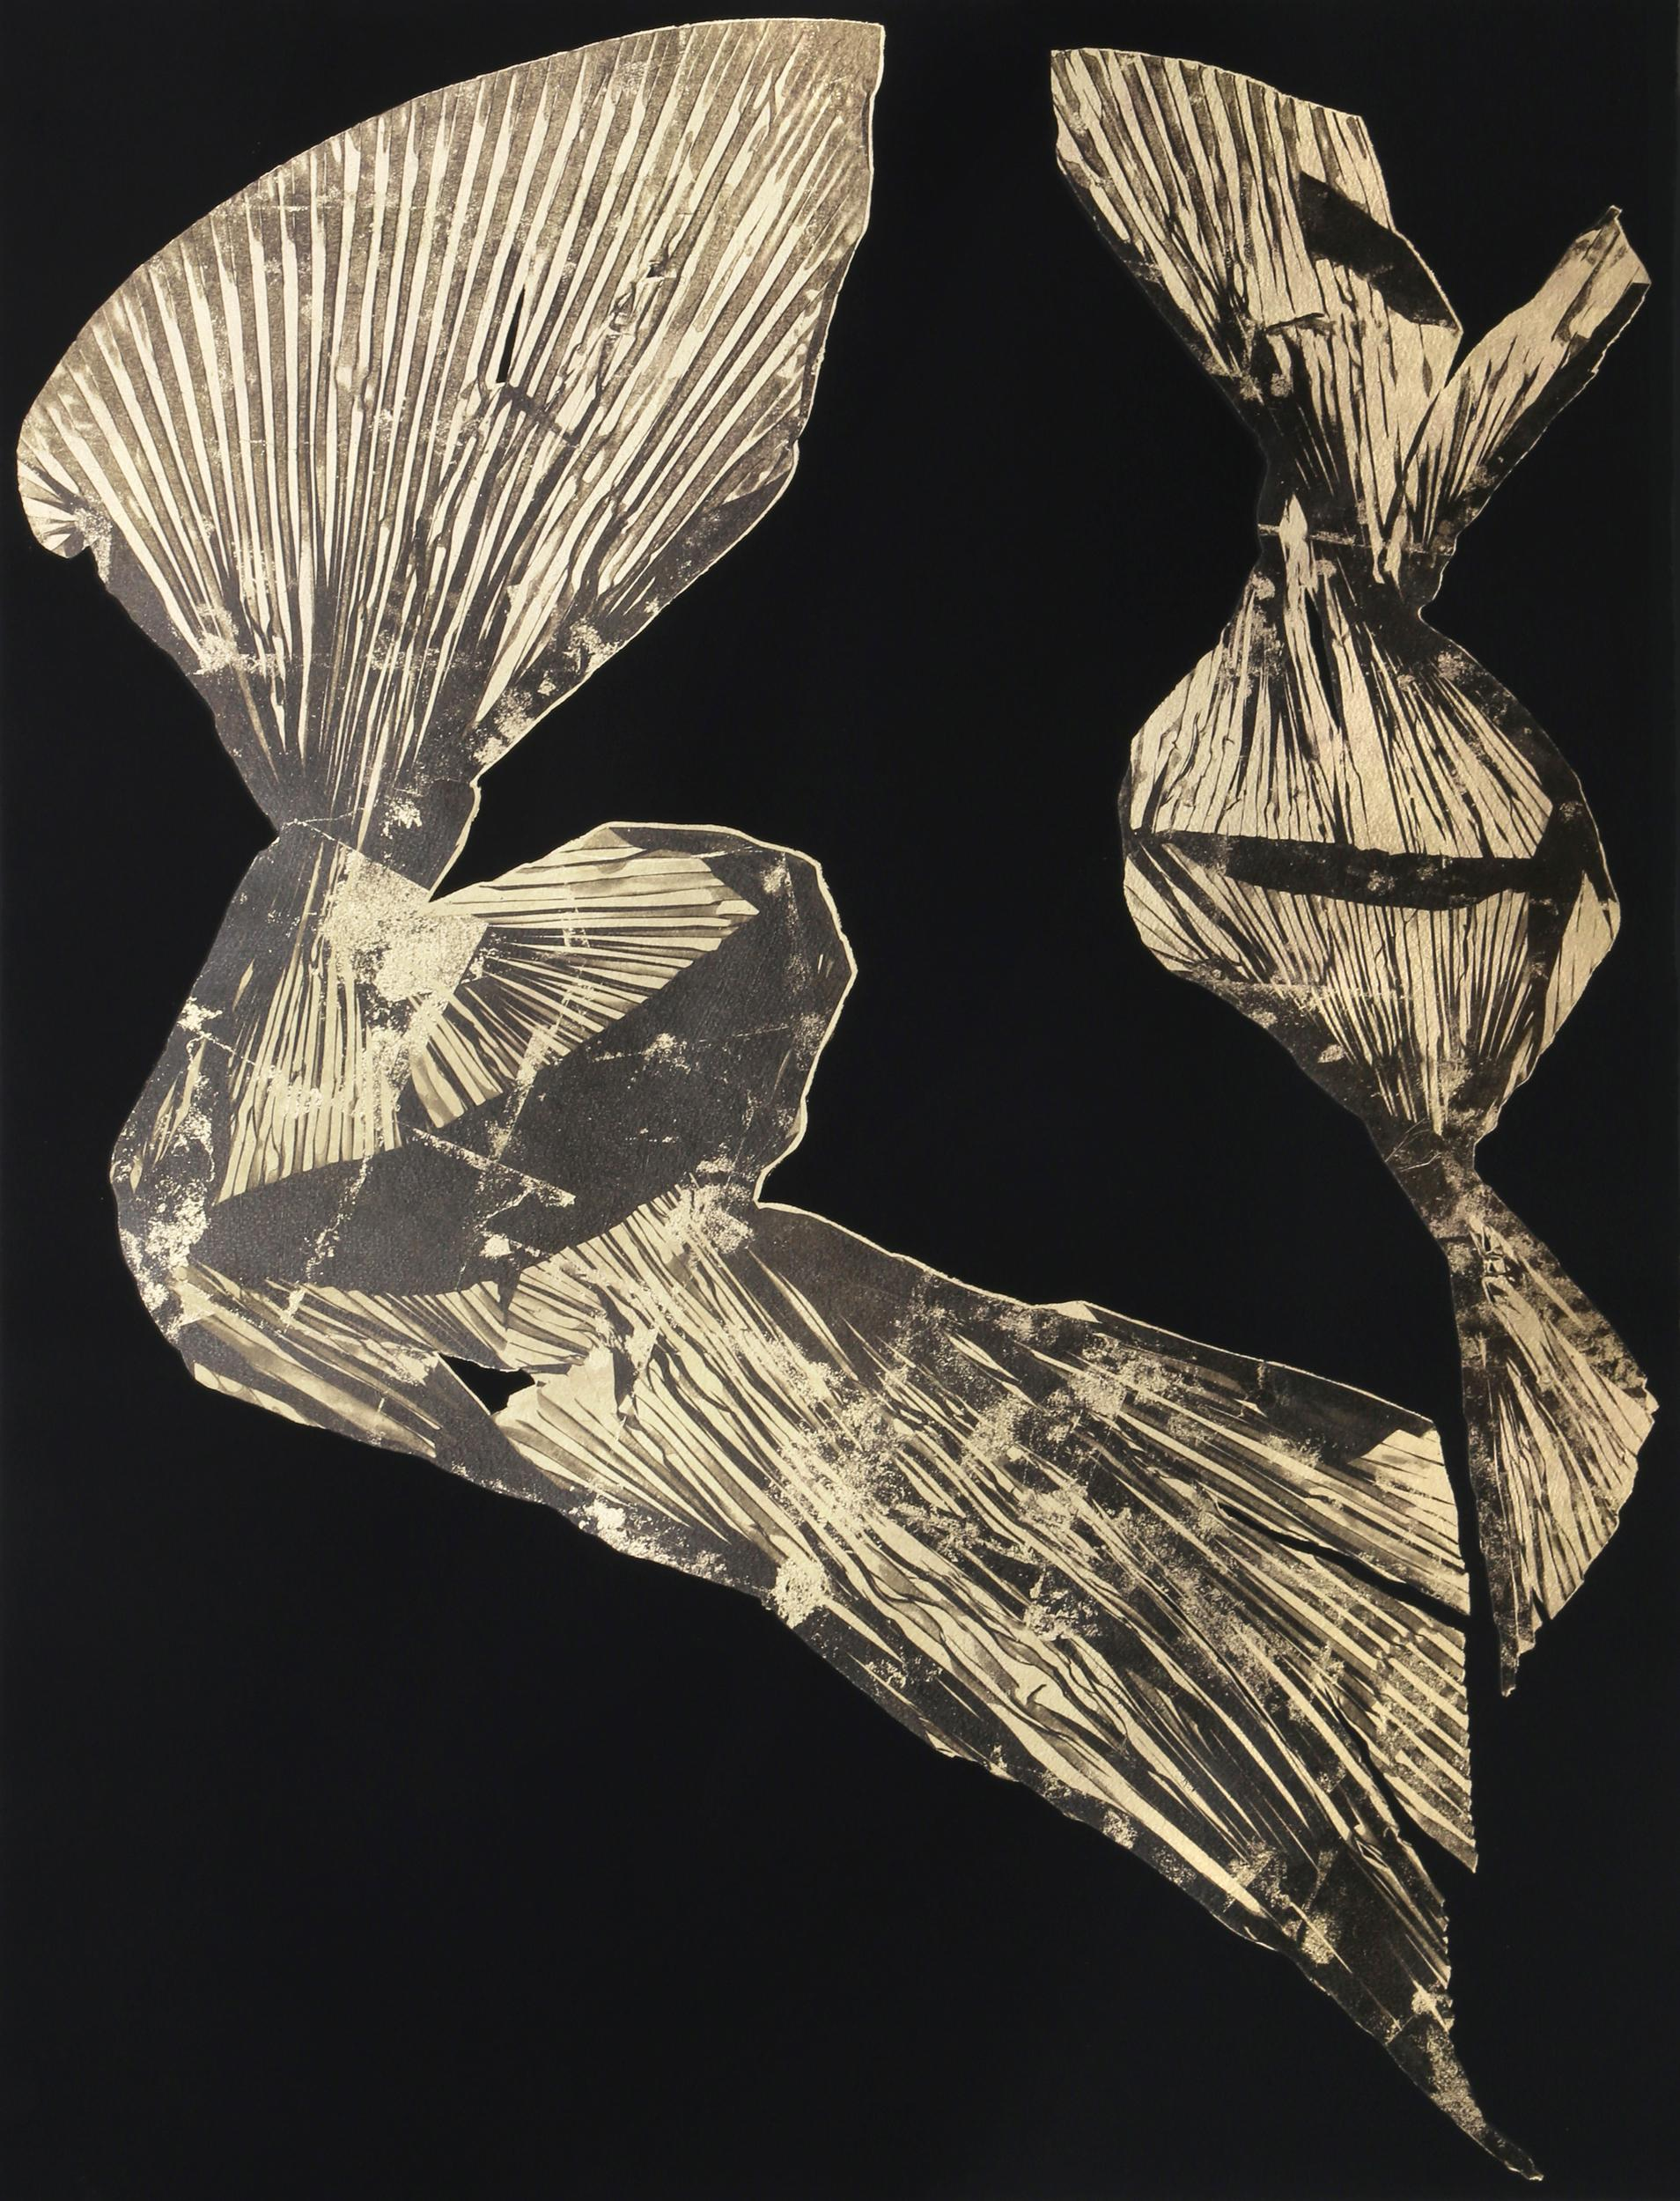 Lynda Benglis, Dual Nature (Black), Lithograph with Gold Leaf on Hand Tinted Paper